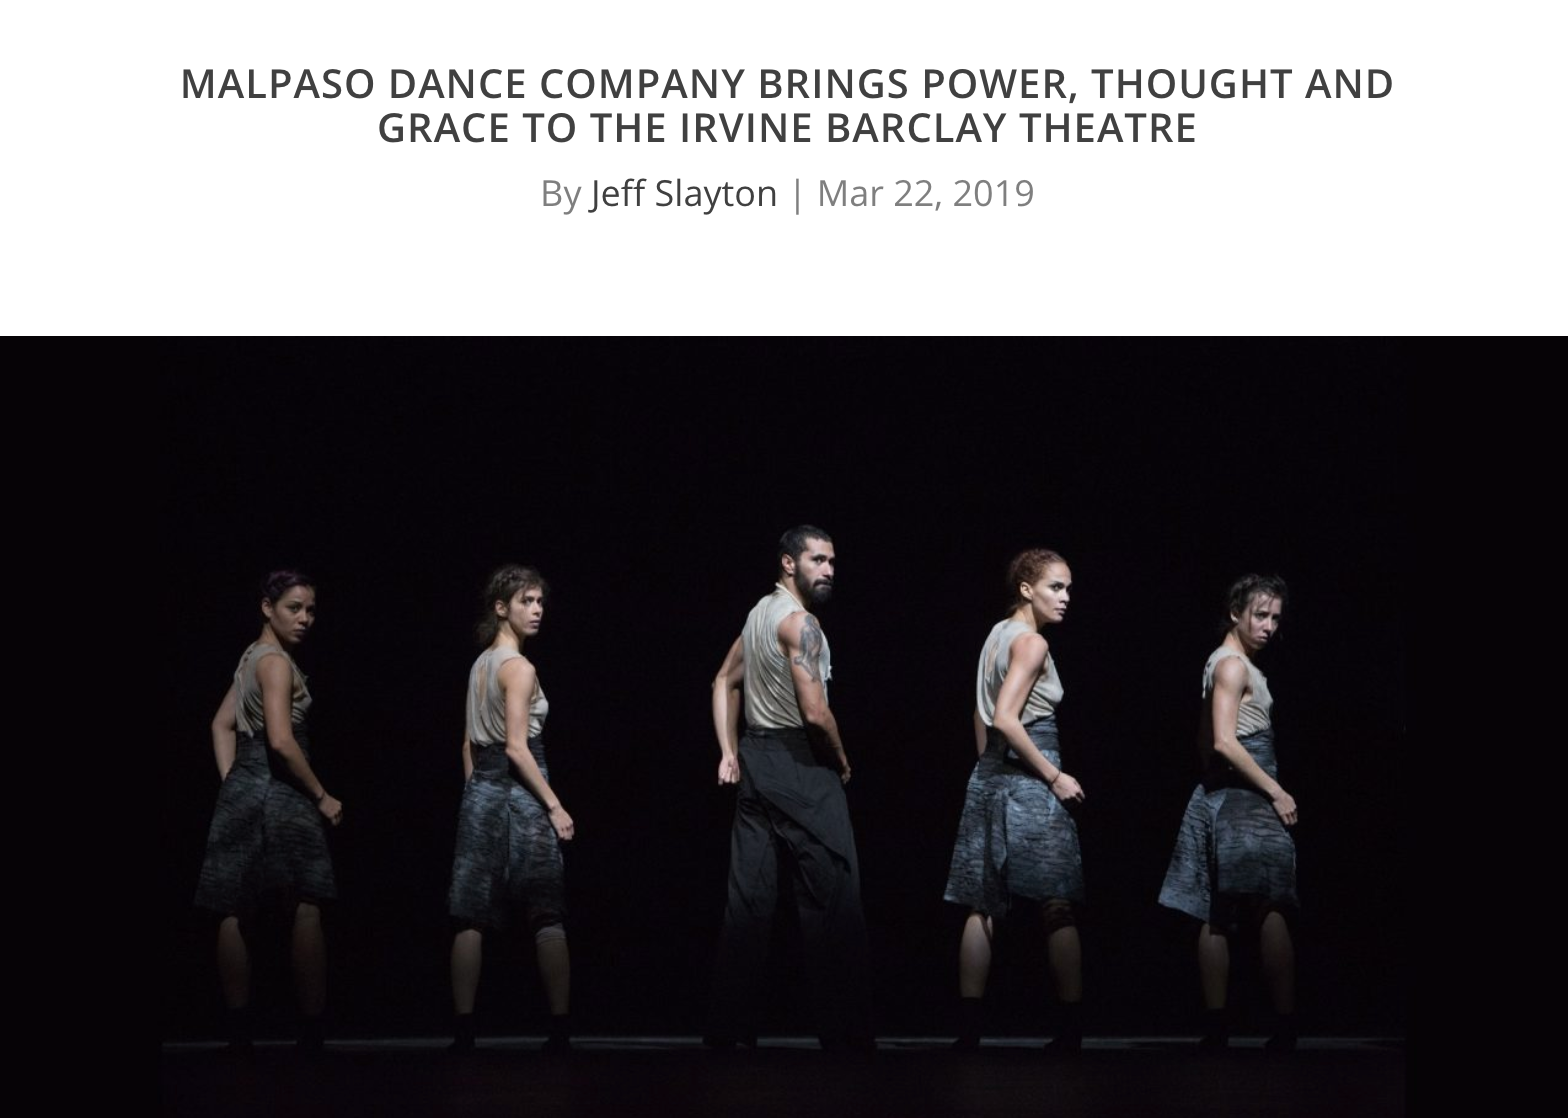 Malpaso Dance Company Brings Power, Thought, and Grace to the Irvine Barclay Theatre